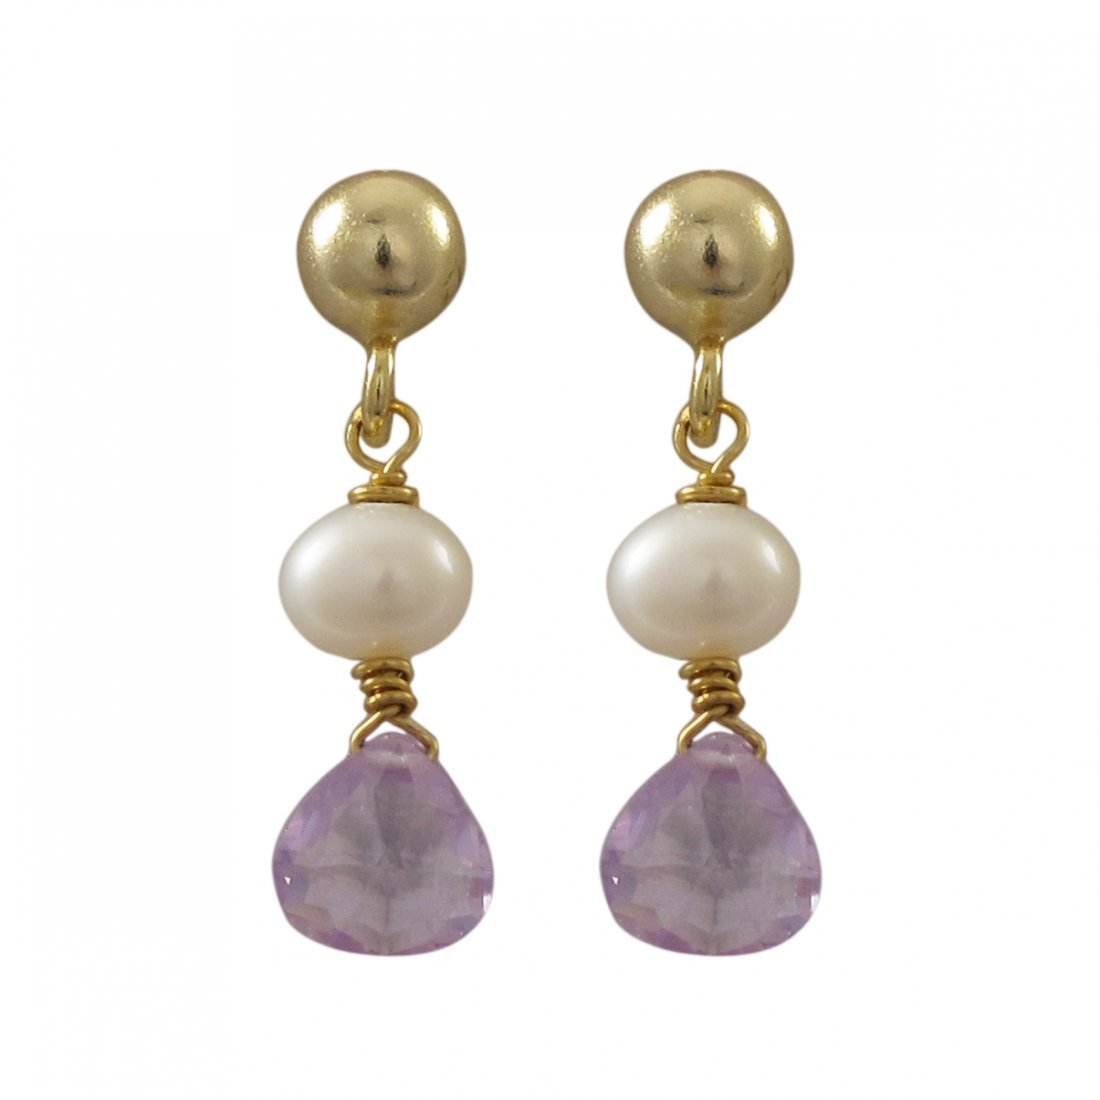 Gold Filled Post Earrings With Dangling White 4mm Pearl